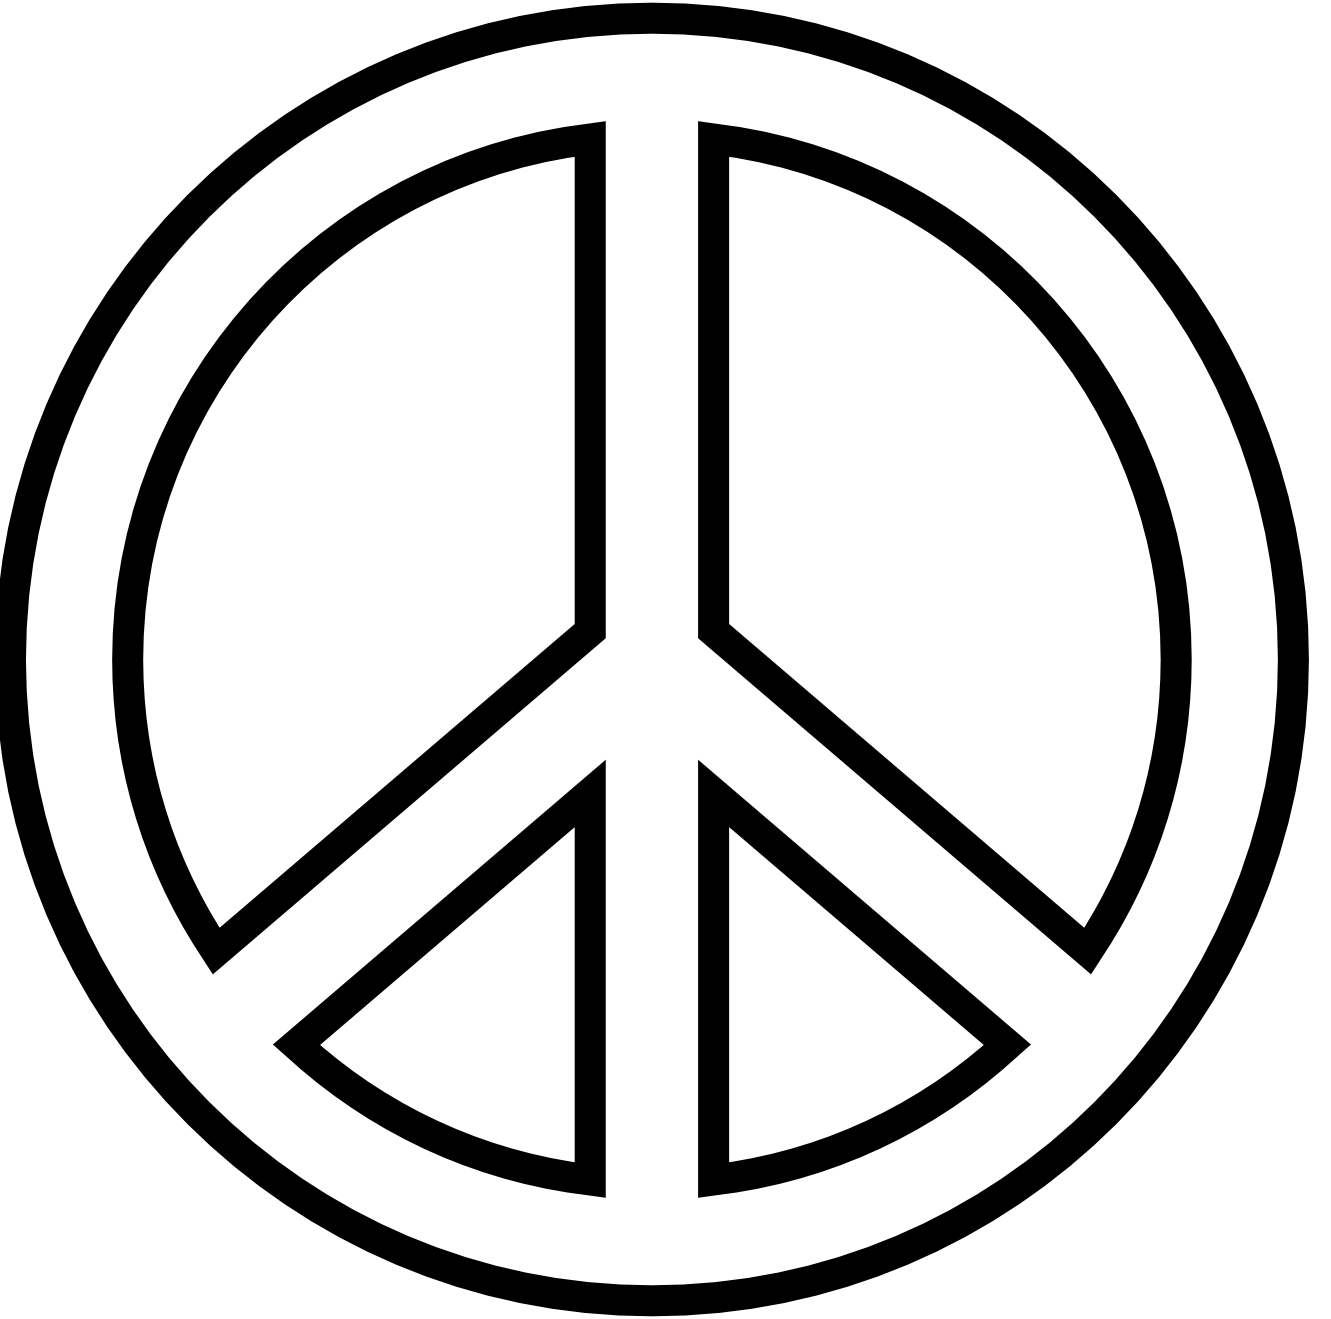 Artistic Symbols: Peace Sign Clipart Black And White